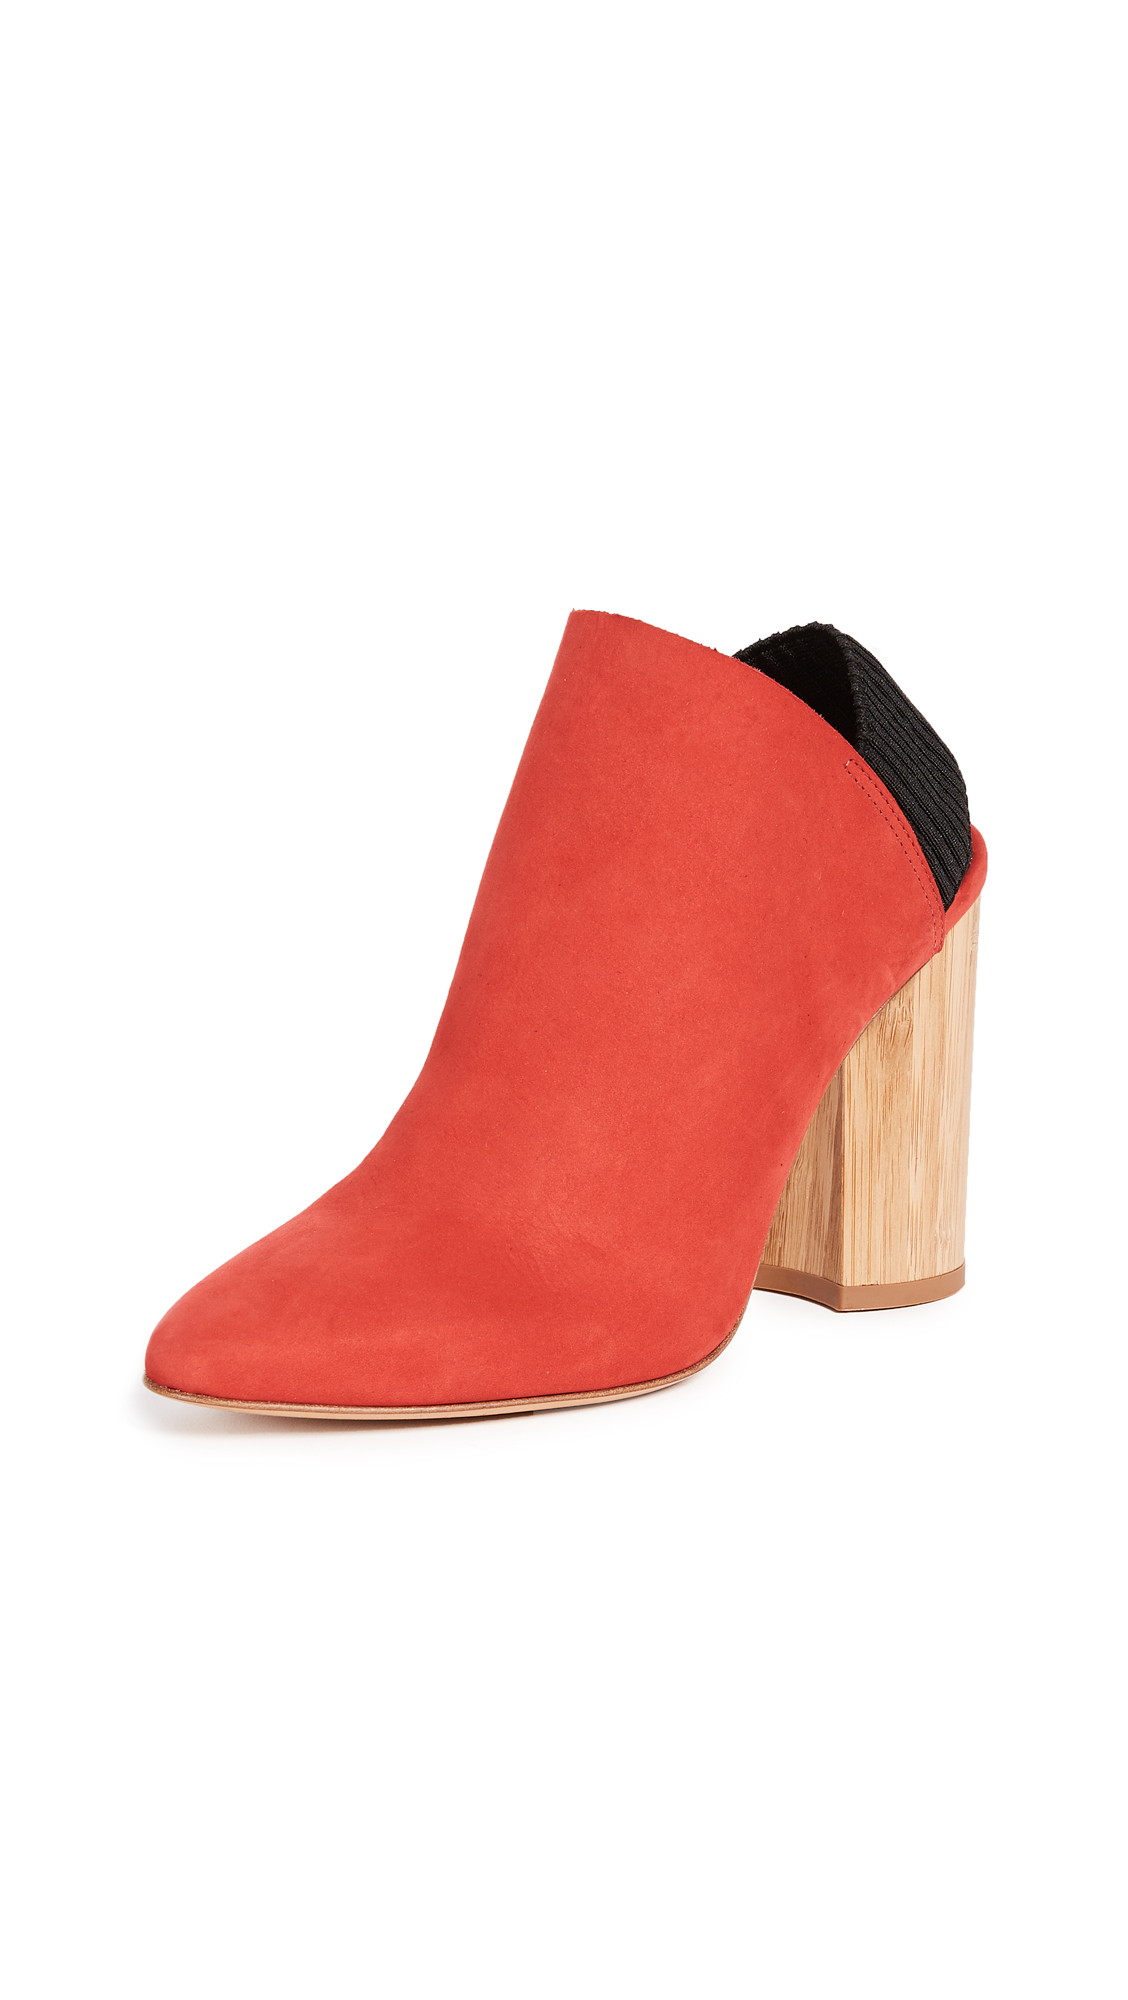 3.1 Phillip Lim Drum Slingback Booties - Amaranth